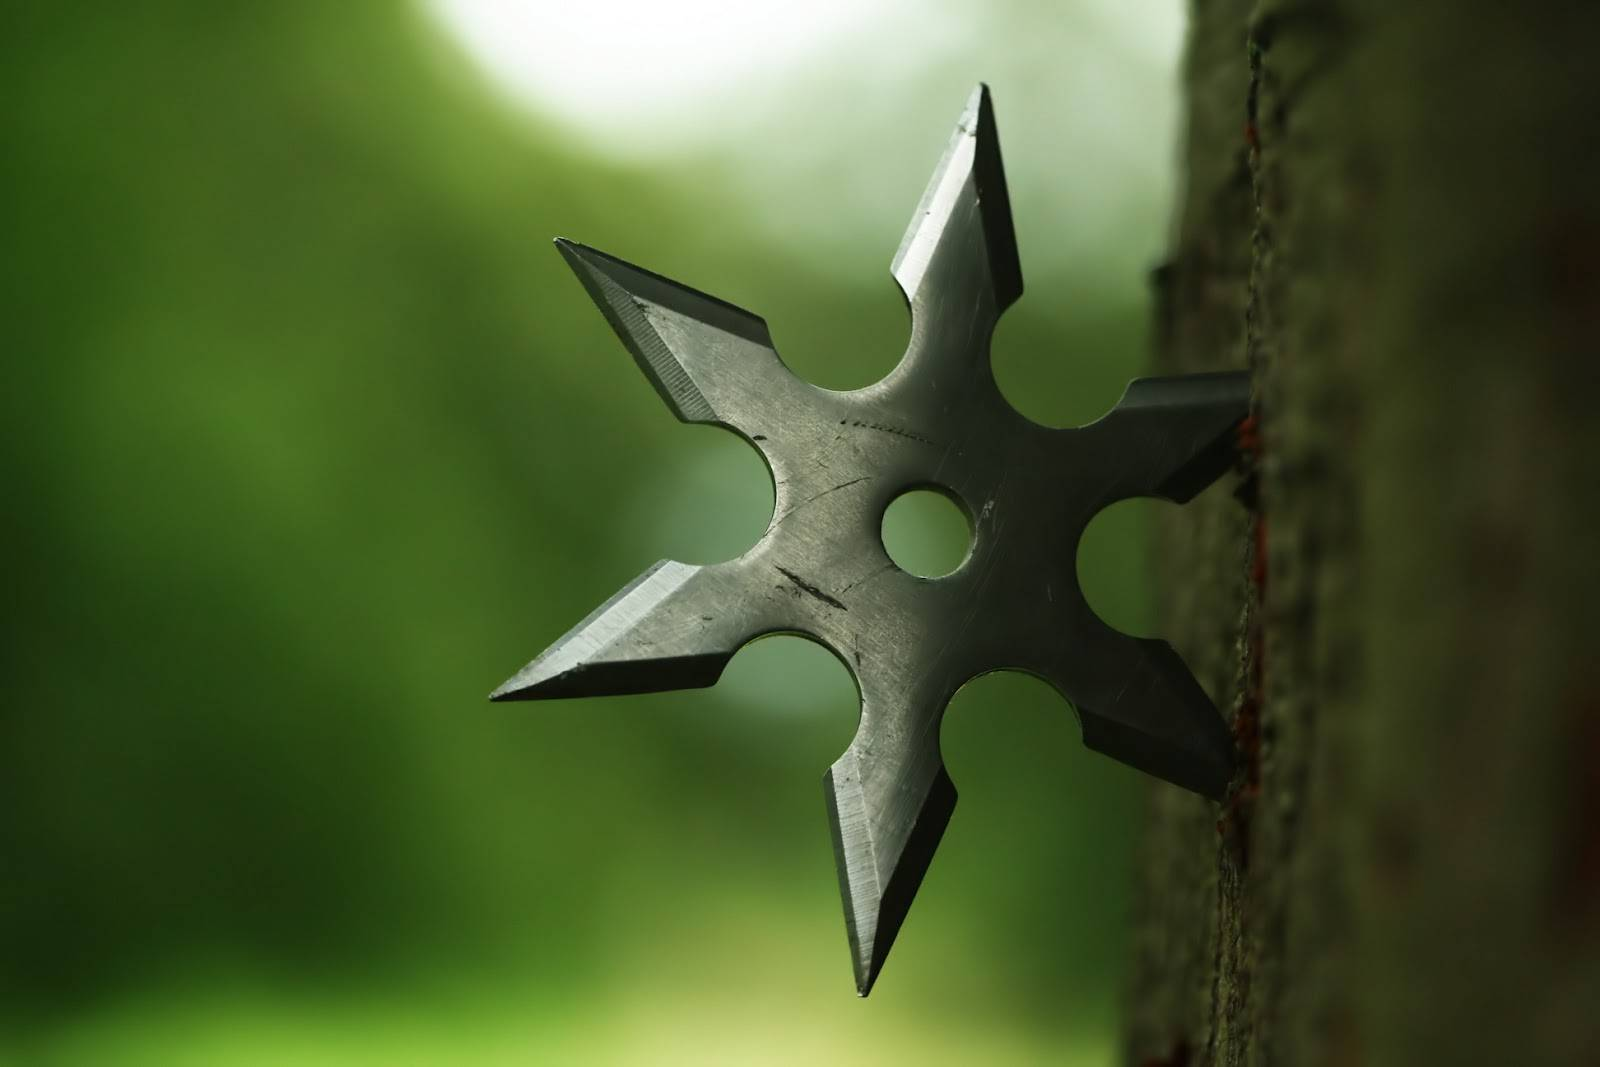 shuriken thrown